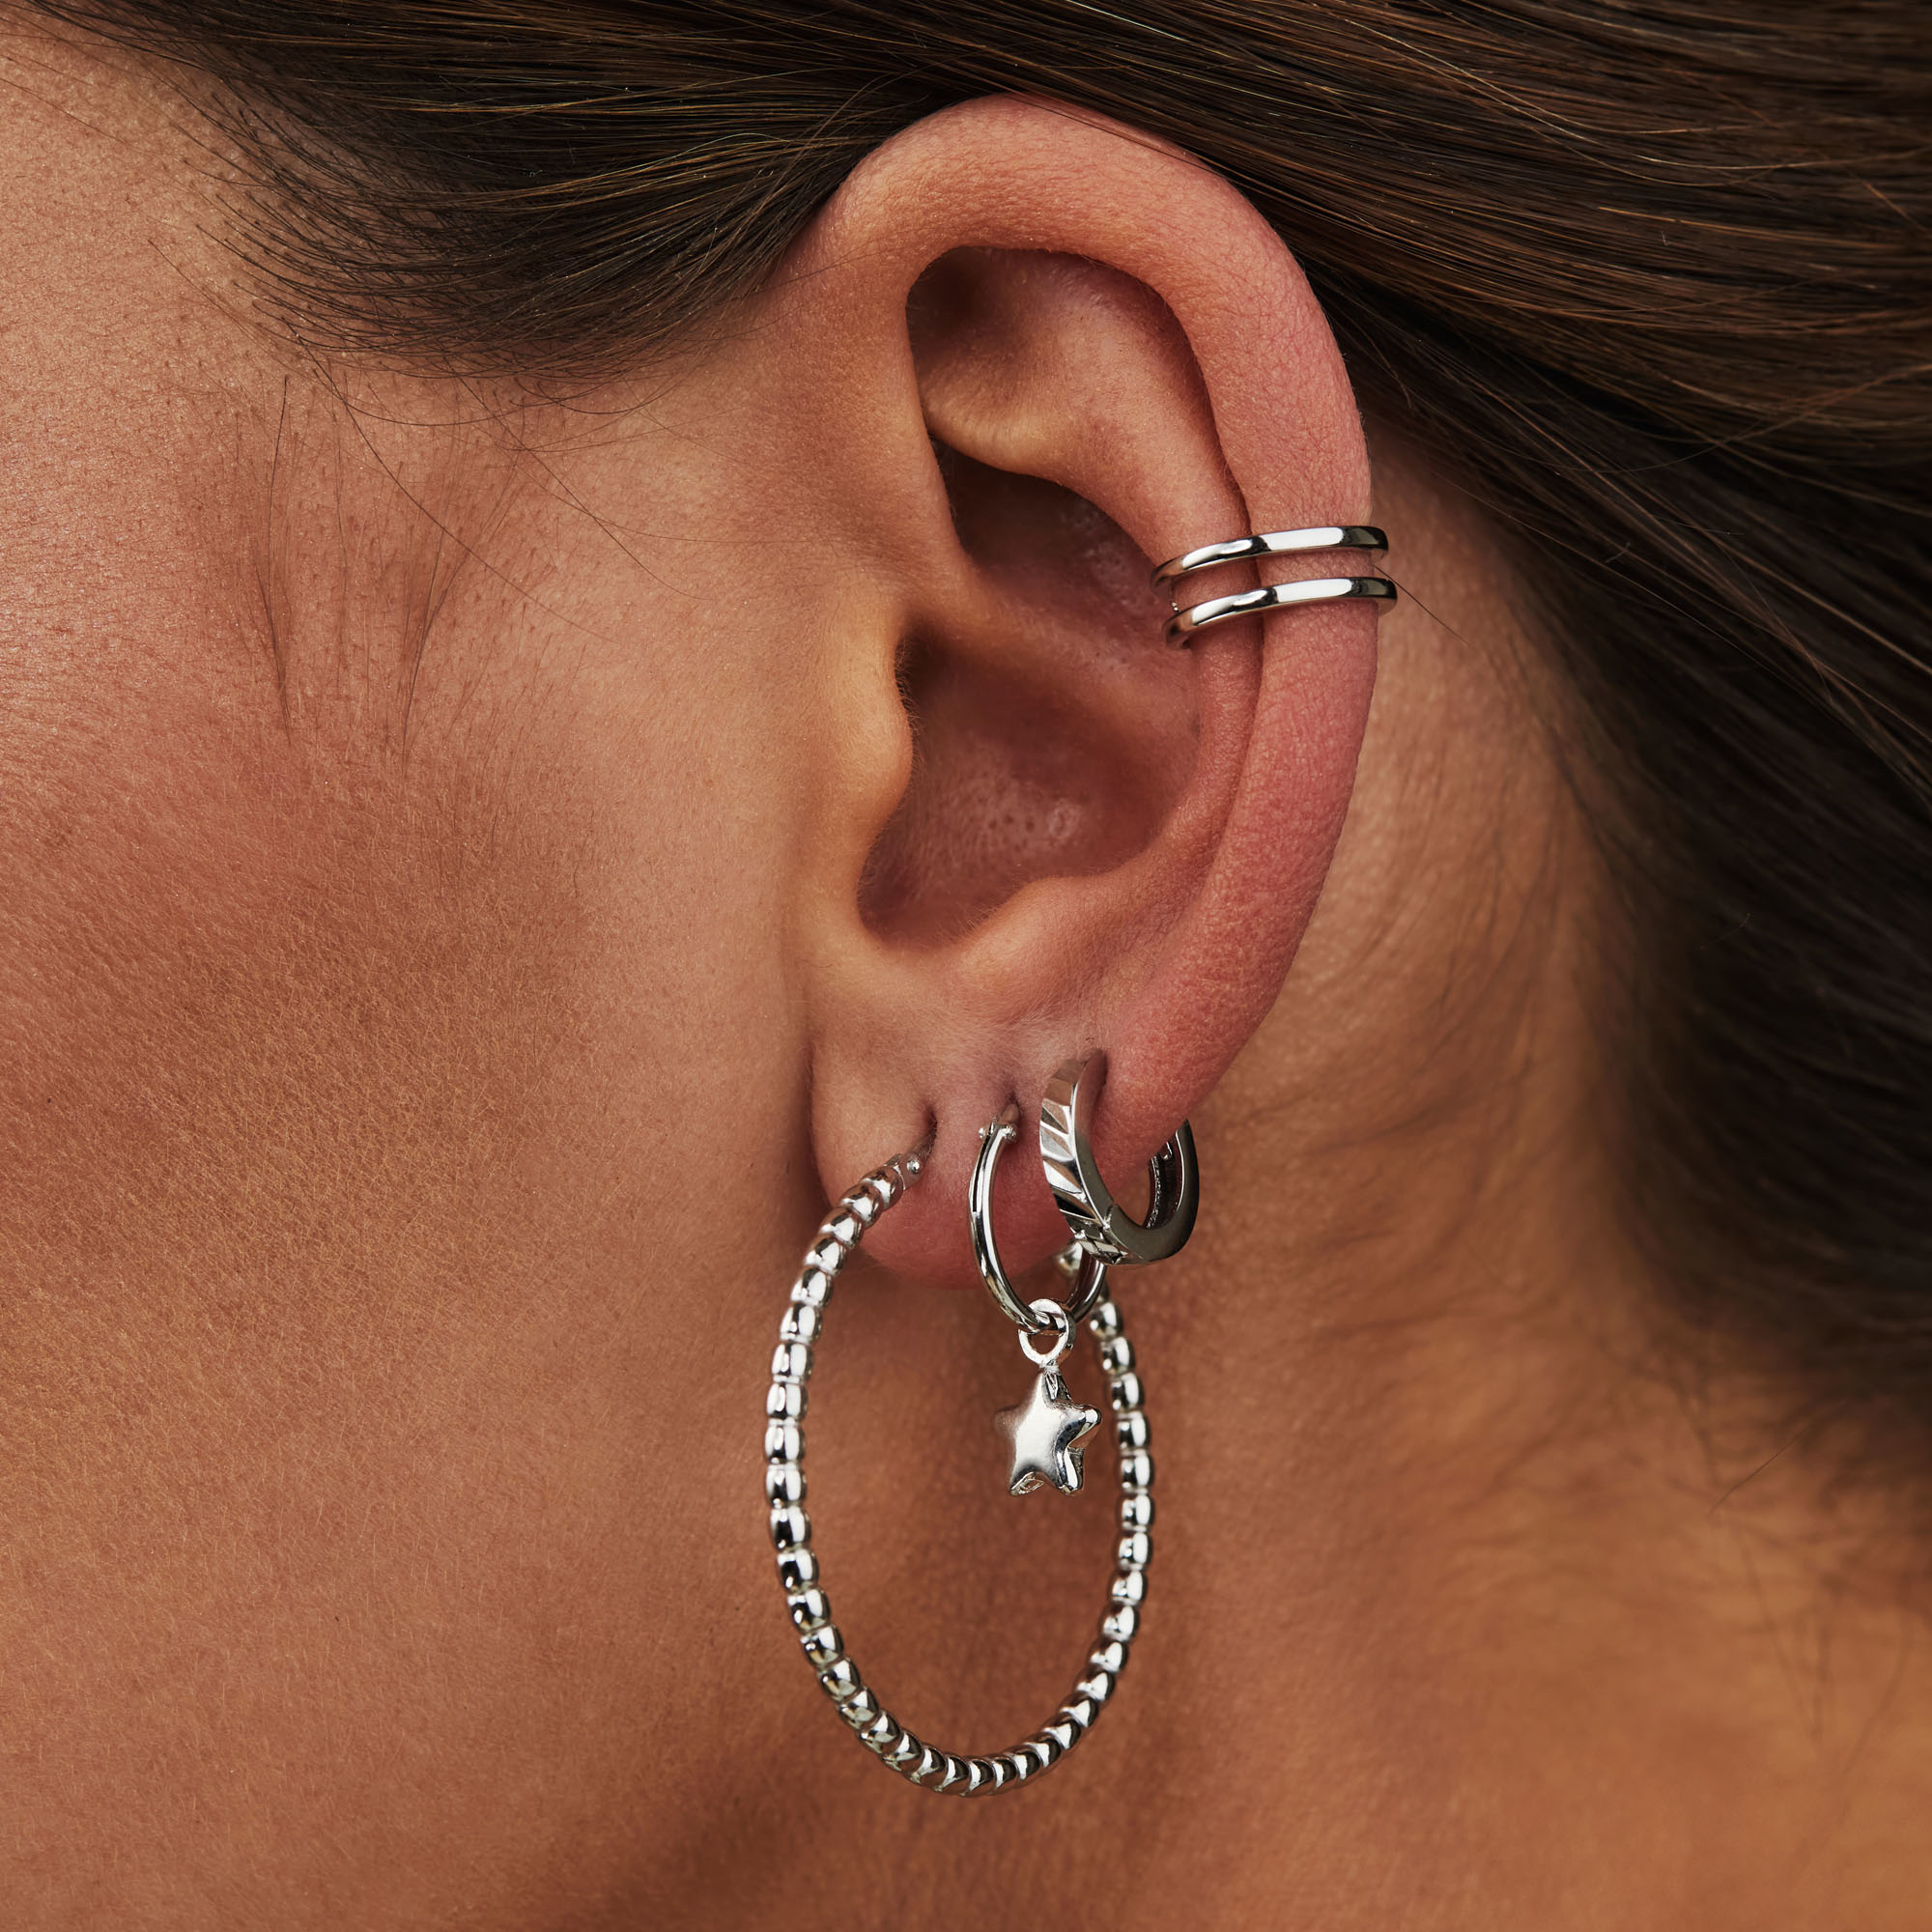 Selected Jewels Léna Manon 925 sterling silver hoop earrings